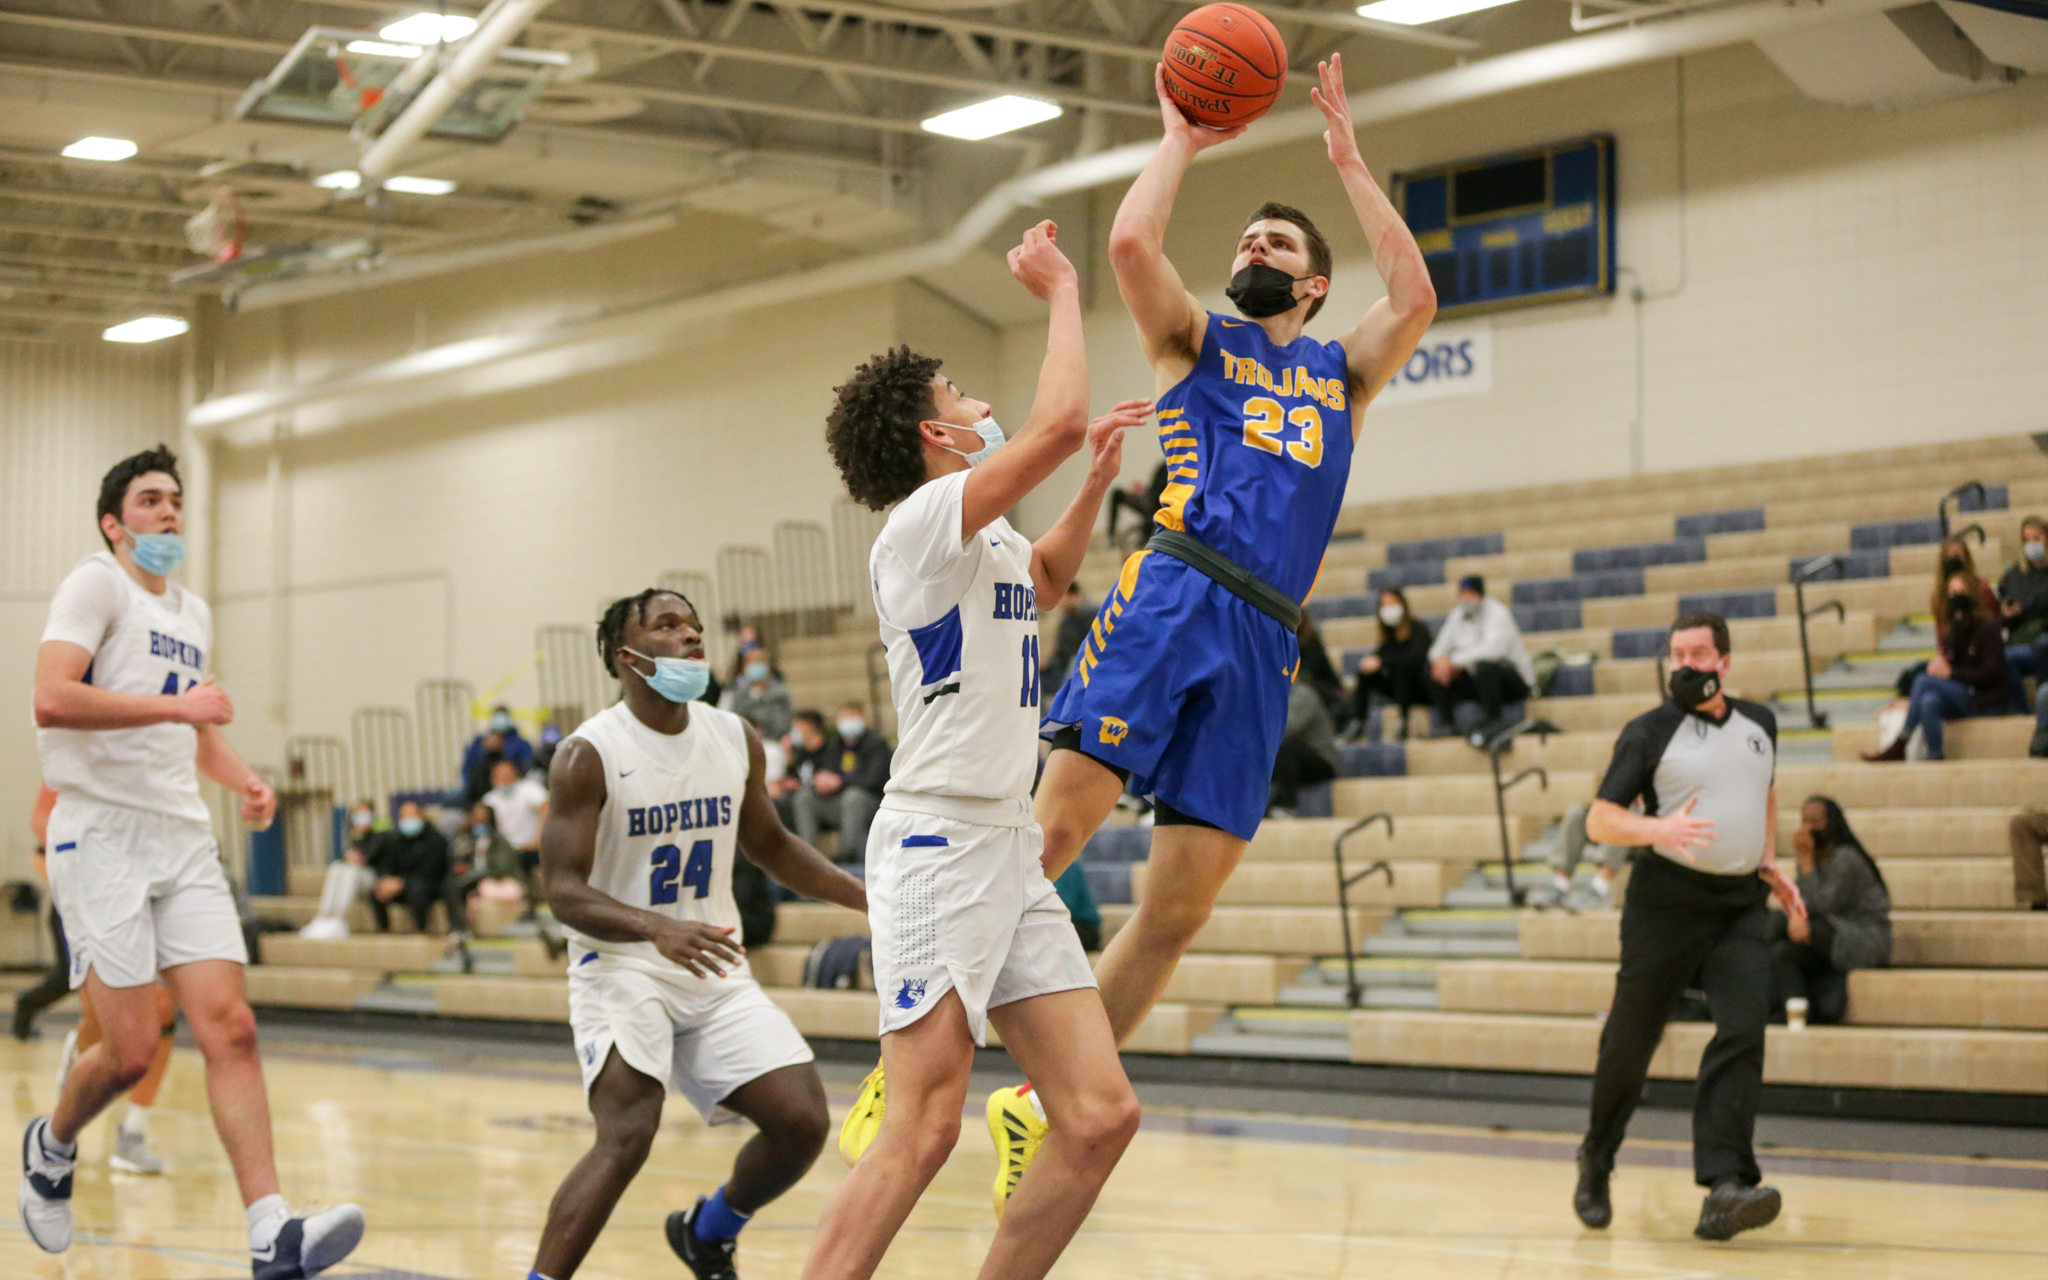 Wayzata's Camden Heide (23) puts up a jump shot against Hopkins Friday night. Heide had a game-high 24 points in the Trojans' 68-60 victory over the Royals in Wayzata. Photo by Jeff Lawler, SportsEngine